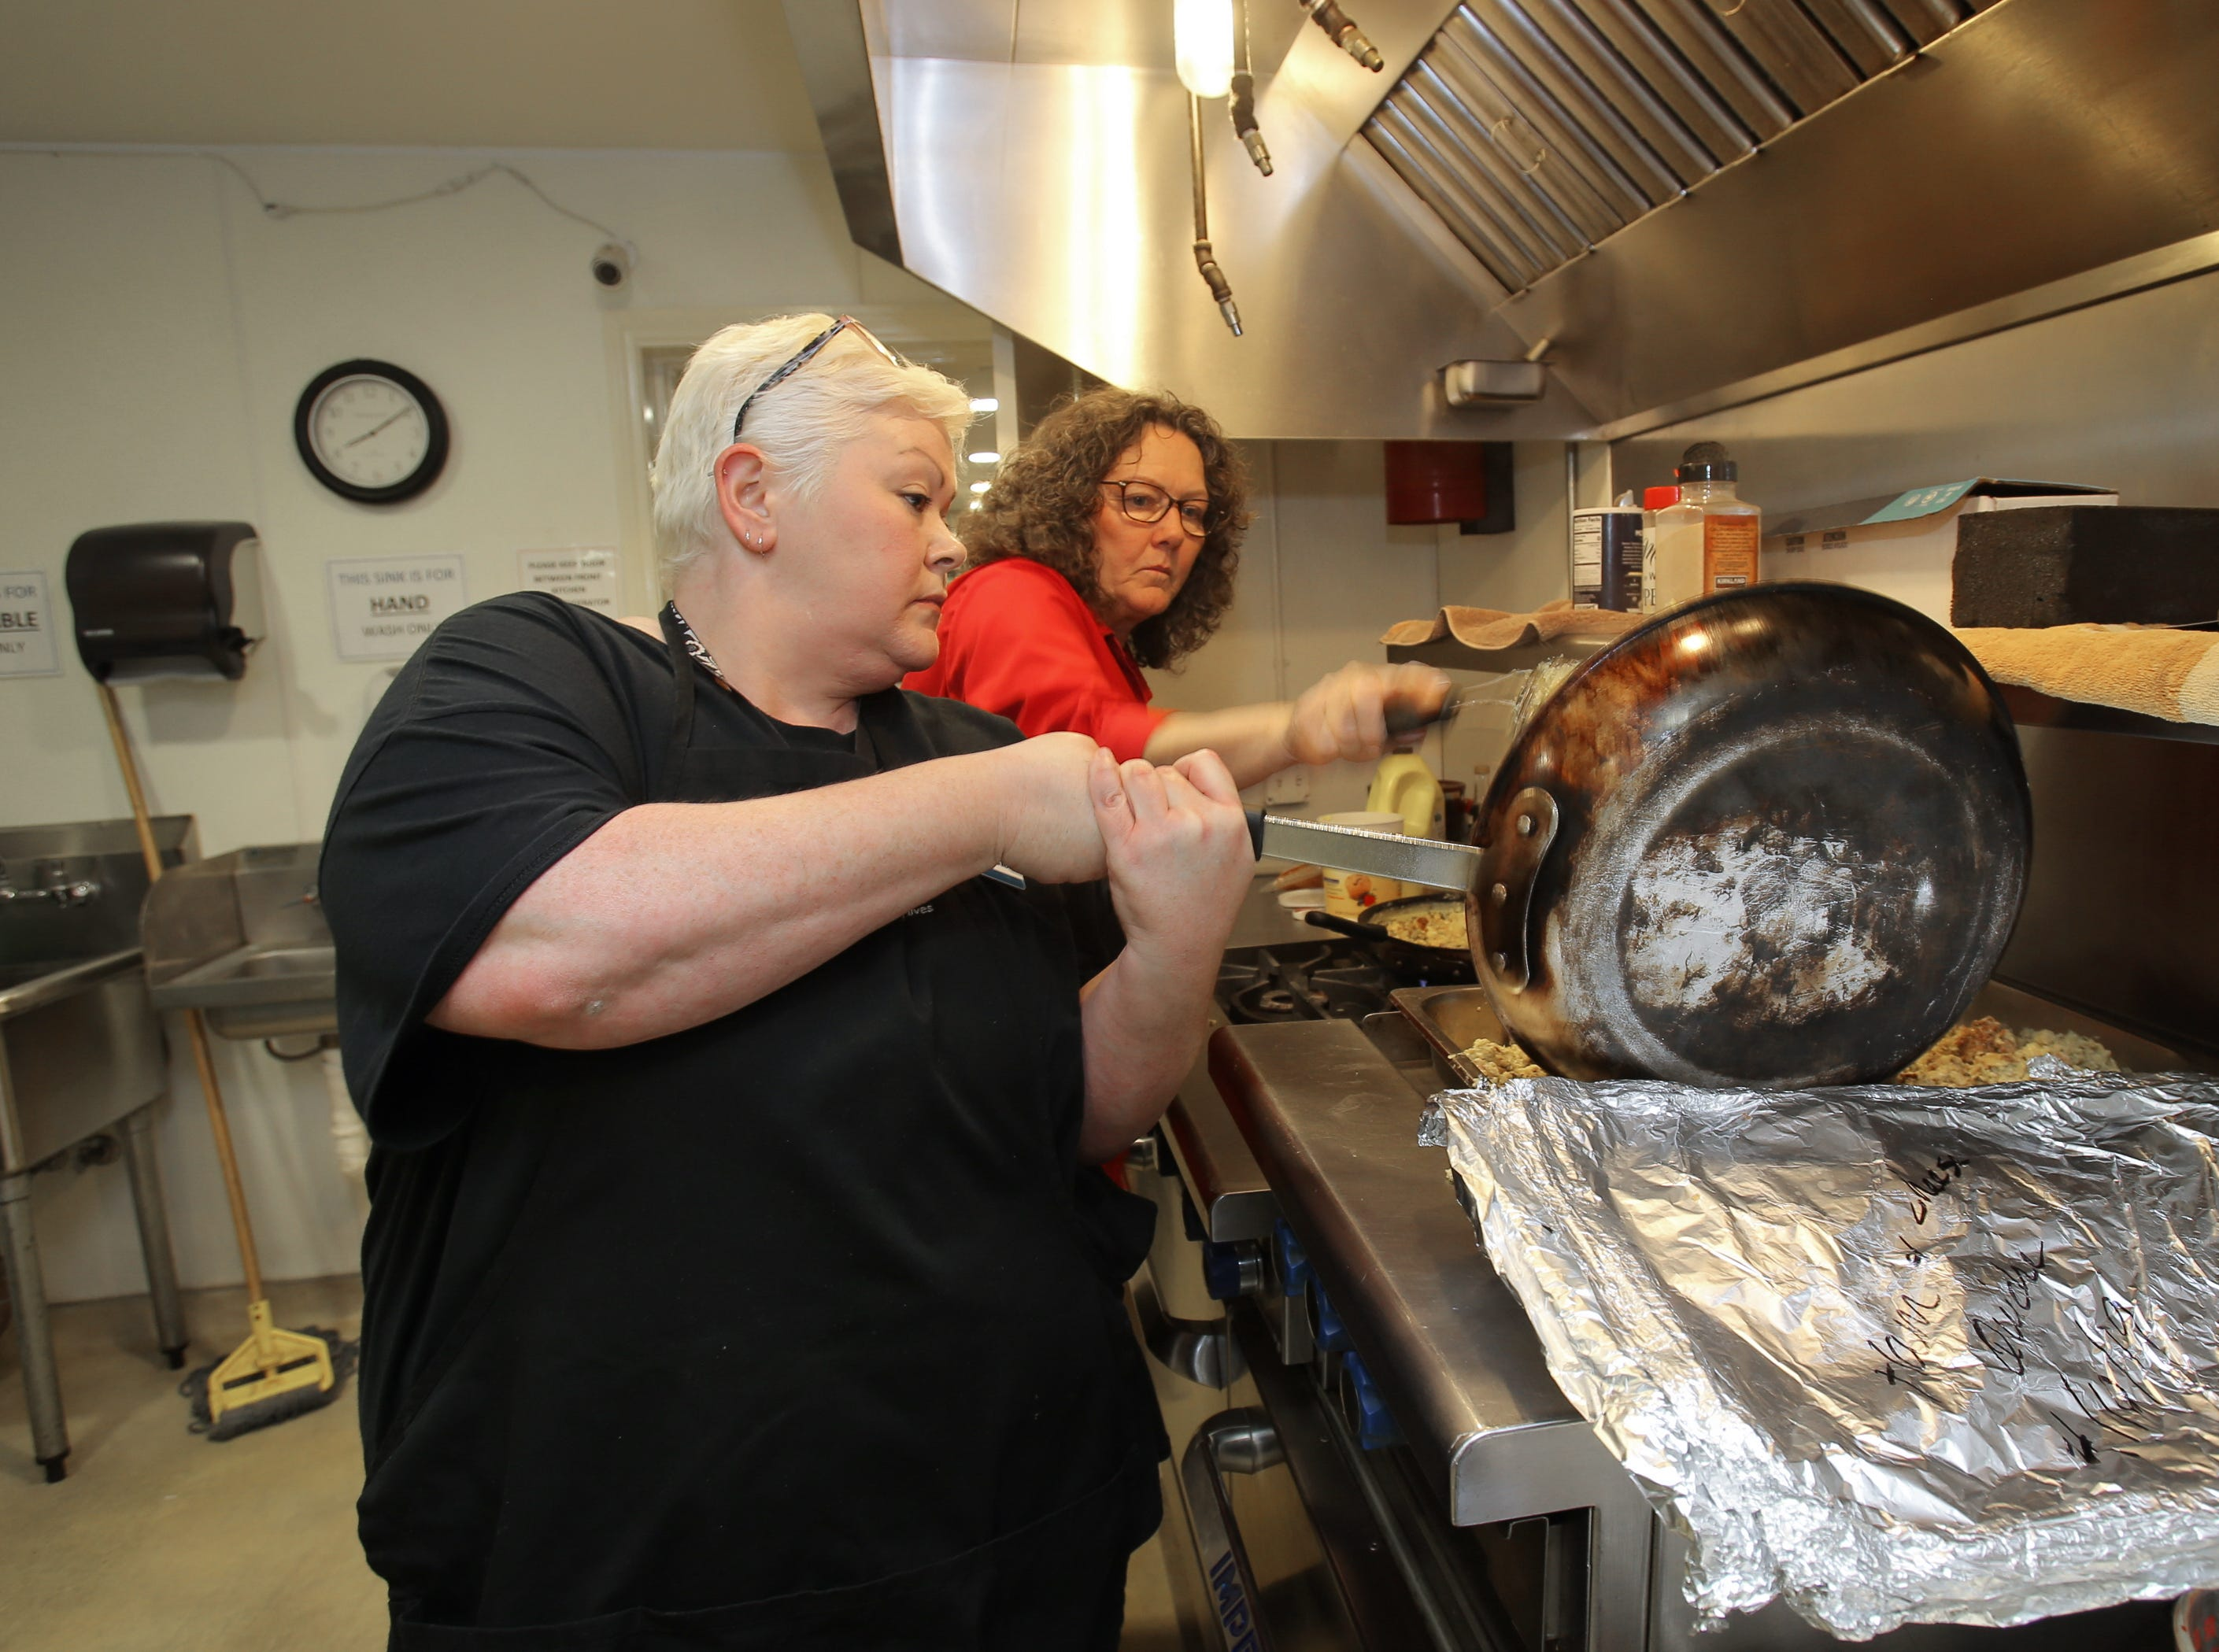 Samaritan Center Executive Director Betty Eskey, right, helps out staff volunteer coordinator Jenna Hayden in the kitchen area as they get ready to serve breakfast at the Simi Valley homeless shelter. After 13 years at the center, Eskey will be retiring in July.